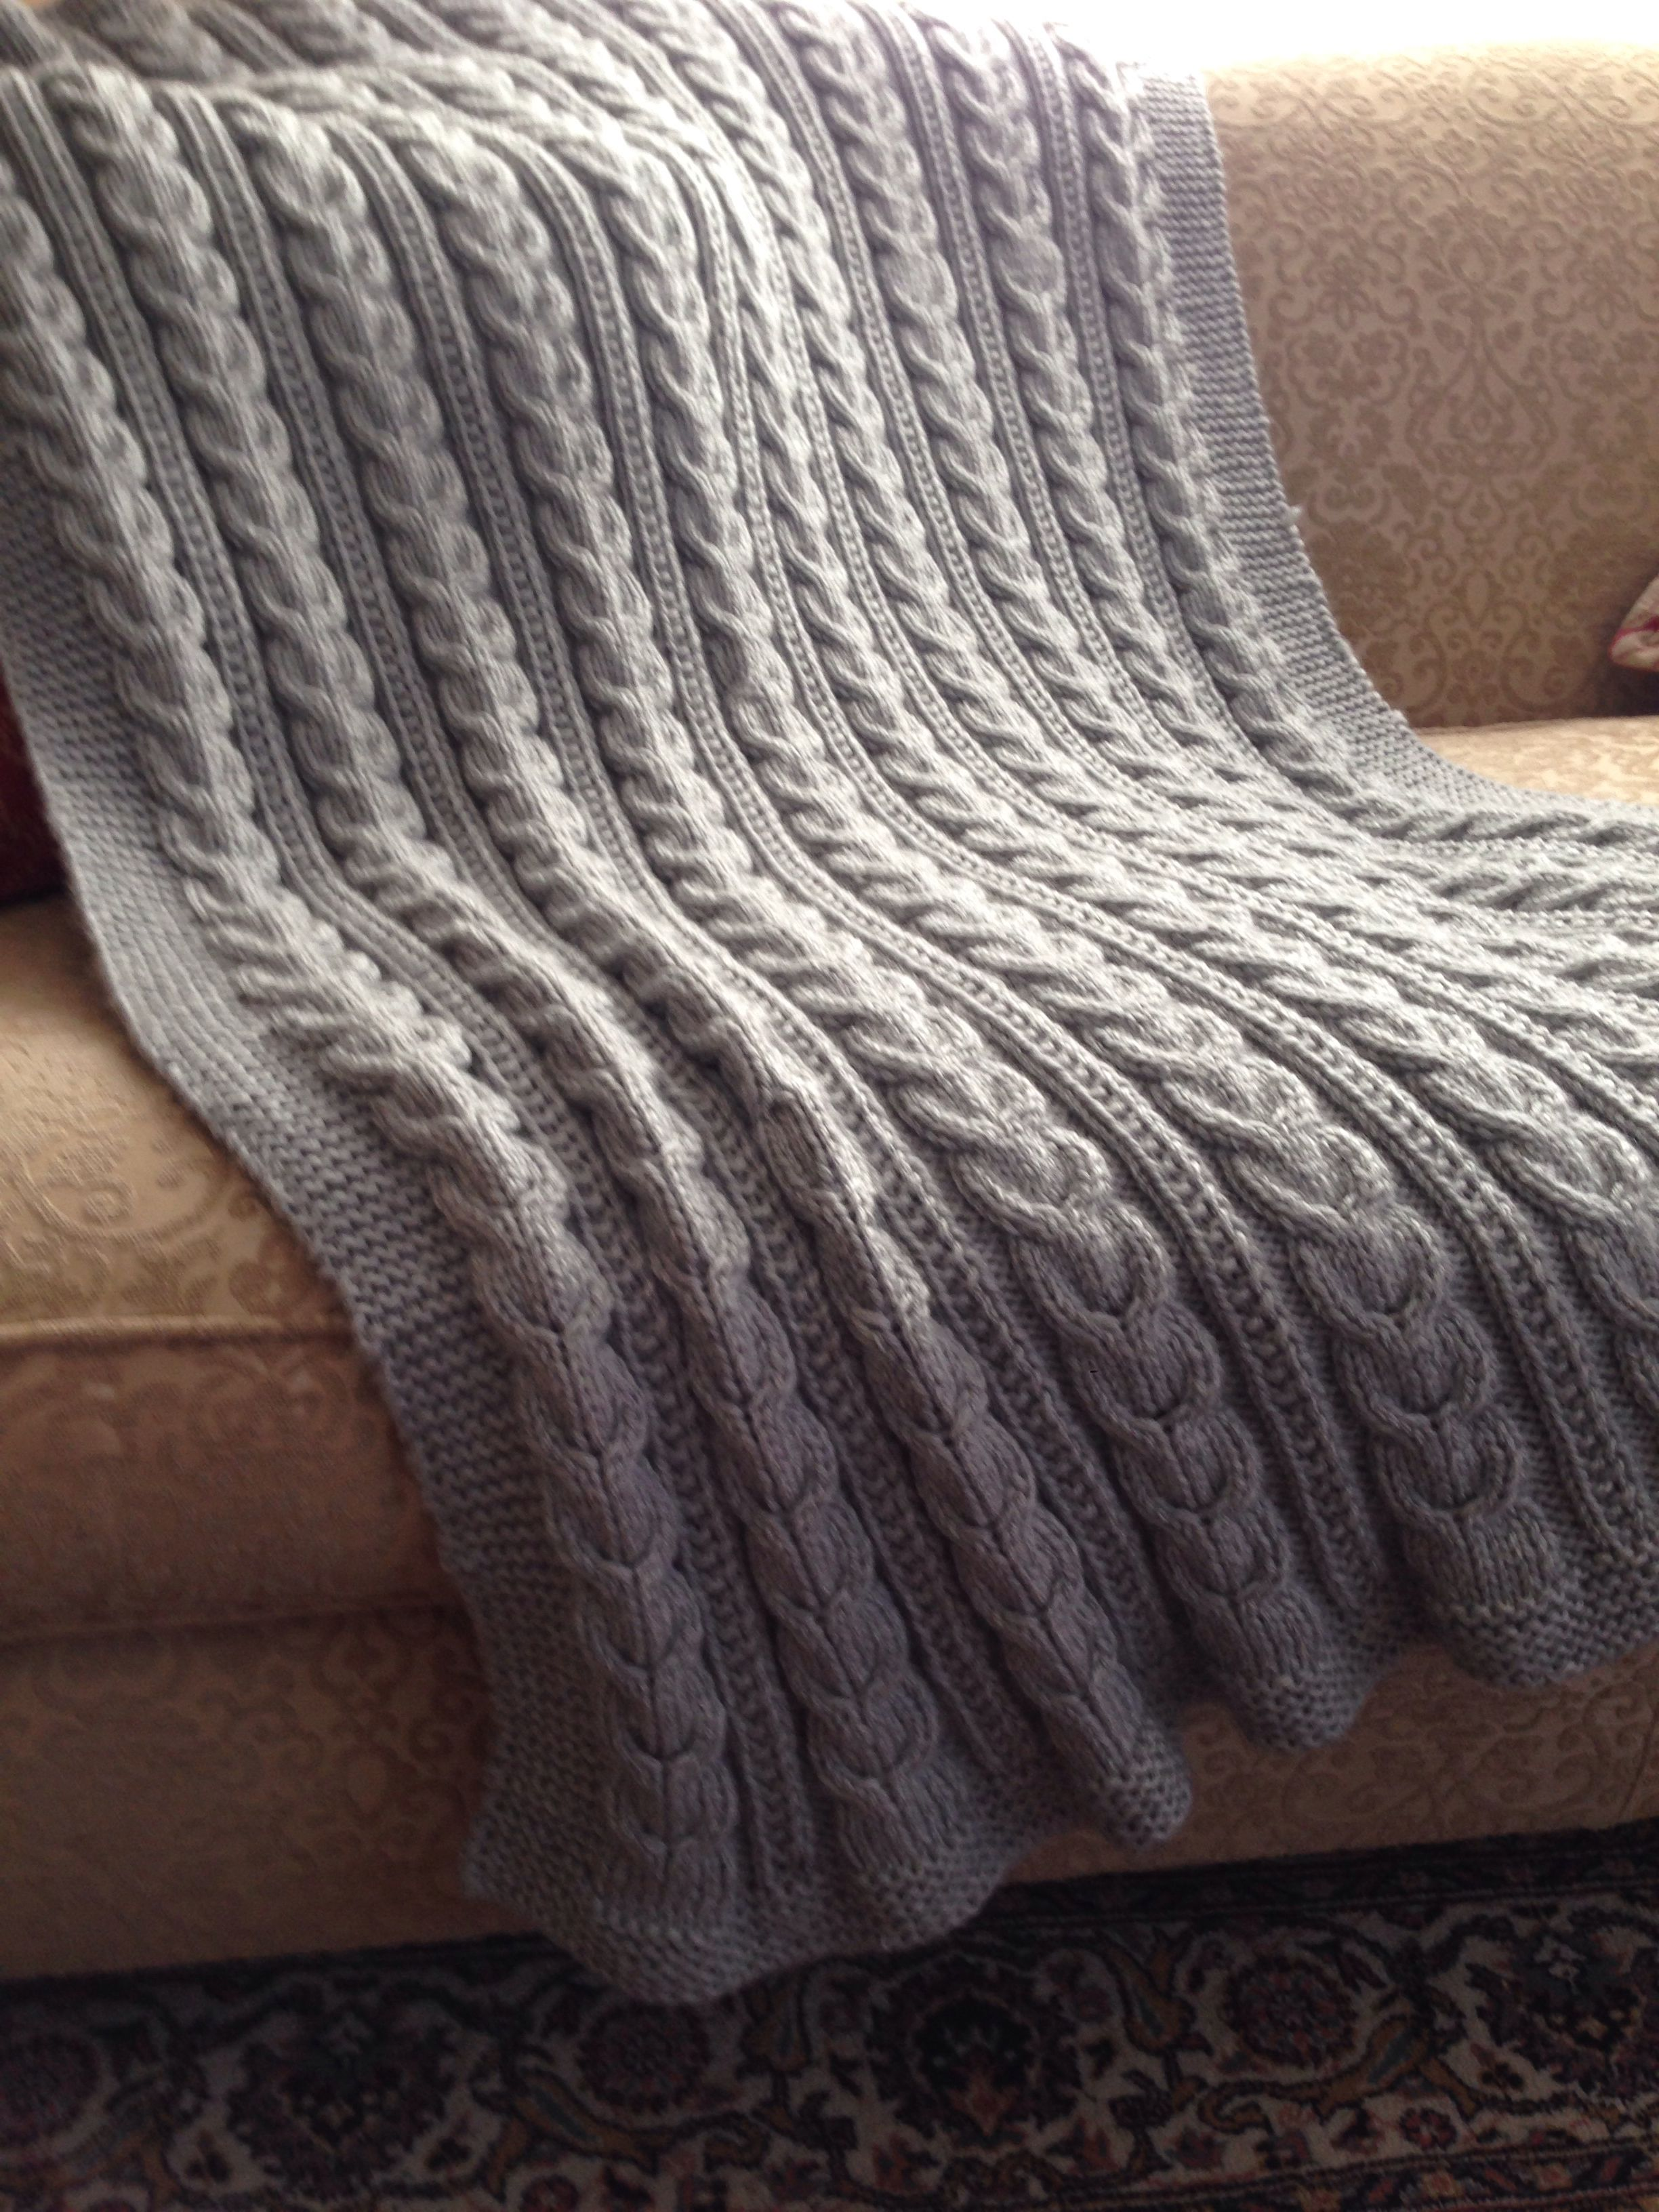 Crochet Cable Knit Blanket